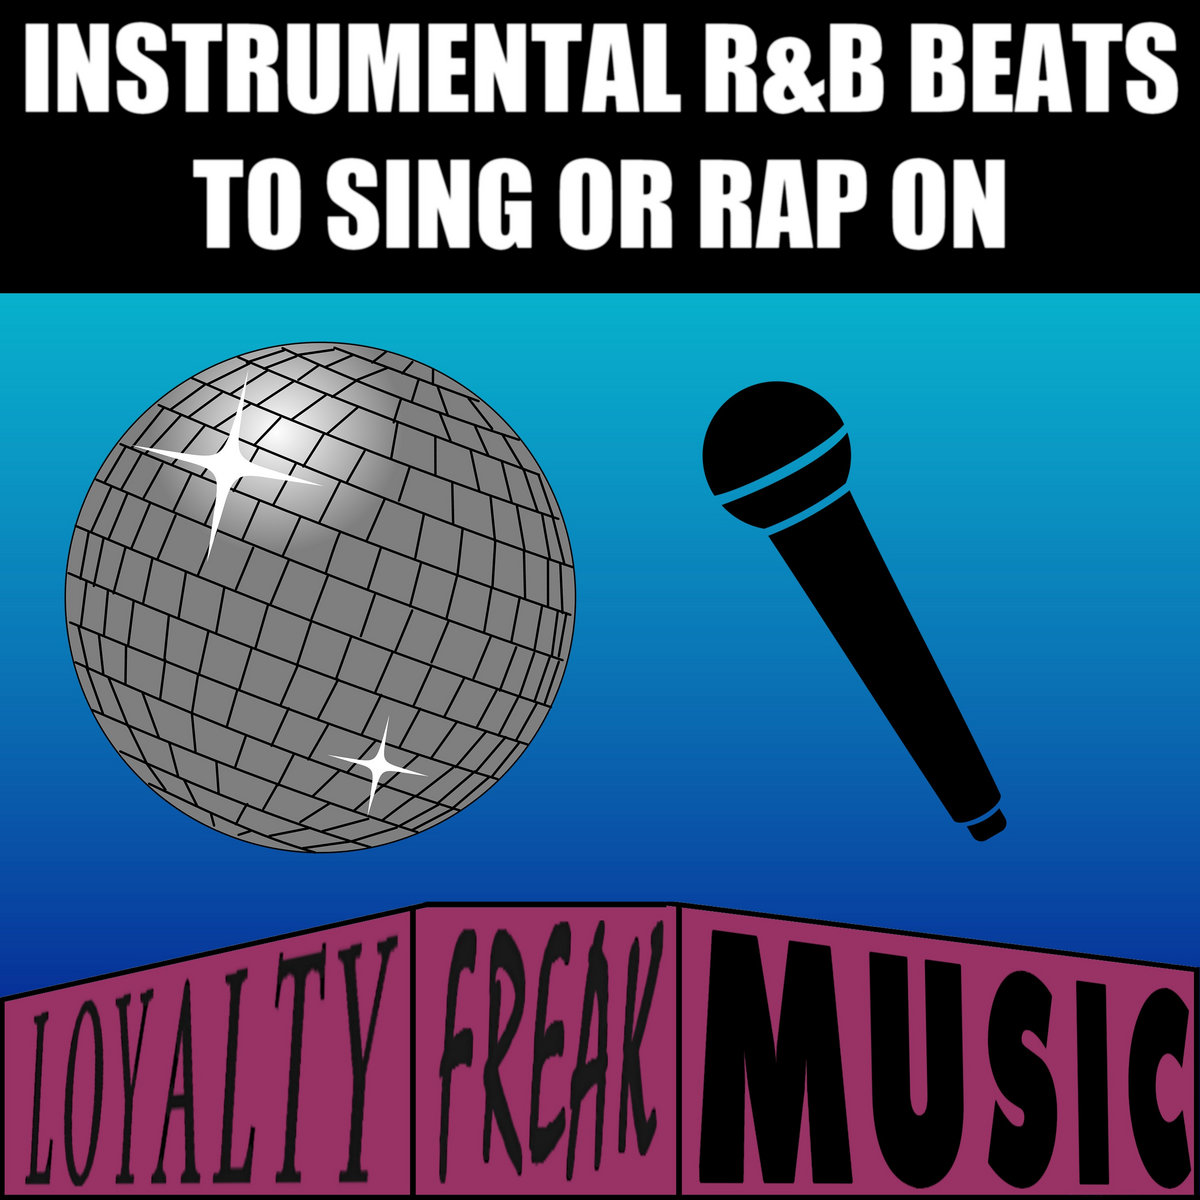 INSTRUMENTAL R&B BEATS TO SING OR RAP ON | Monplaisir